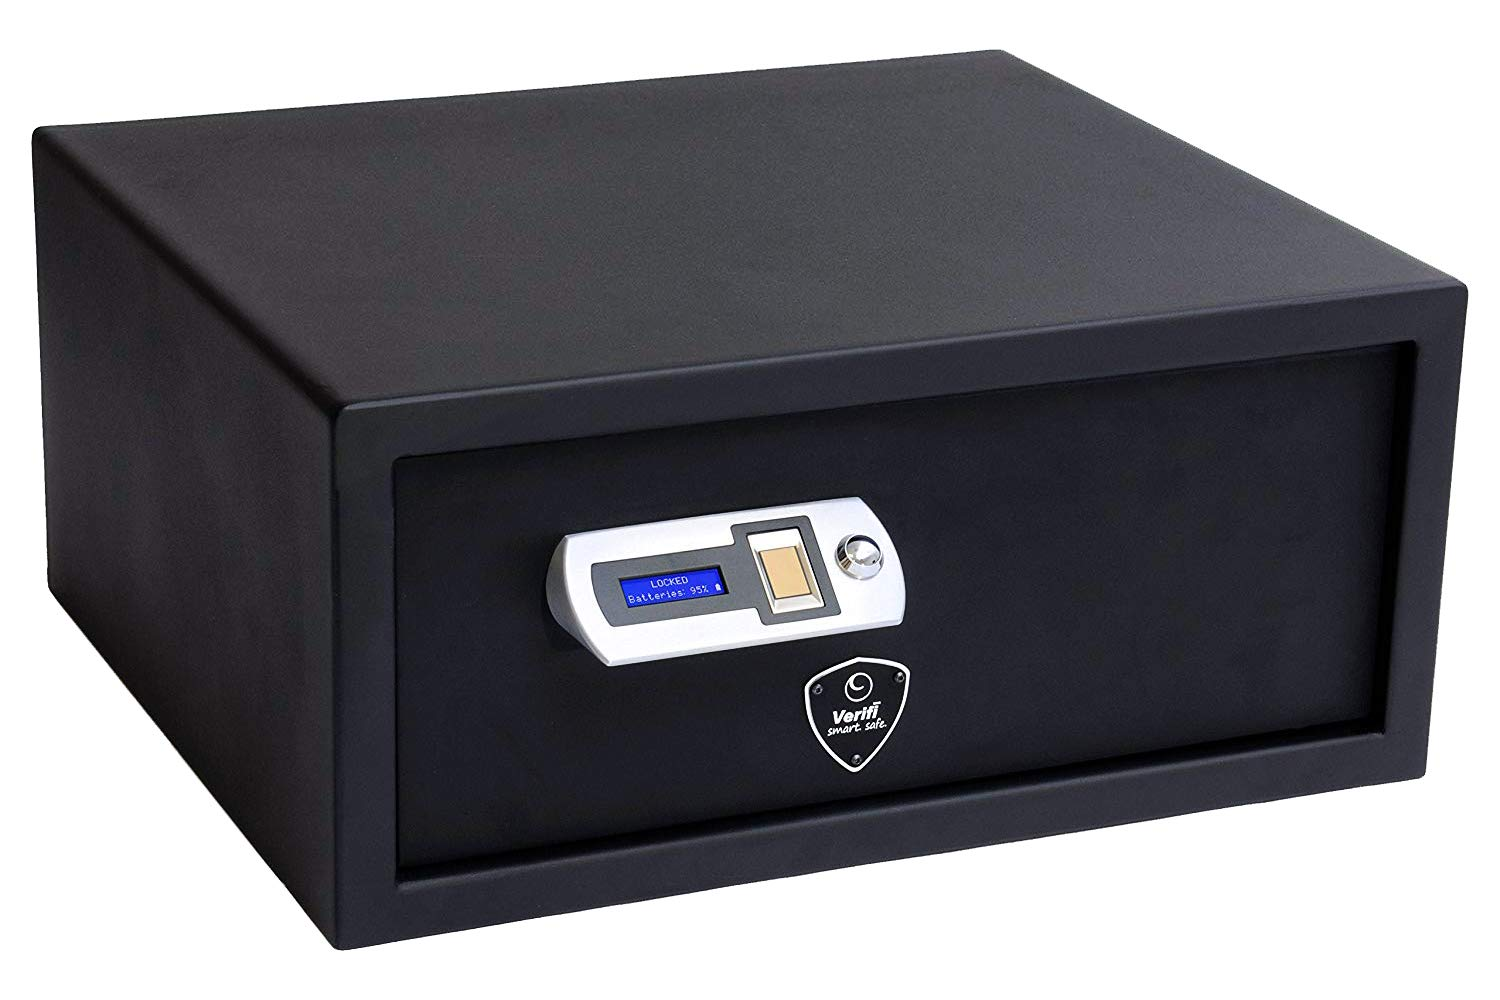 Verifi Smart.Safe. S6000 Biometric Gun Safe with FBI Certified Fingerprint Sensor, Self-Diagnostics, Tamper Alerts and AutoLock by Verifi Smart.Safe.